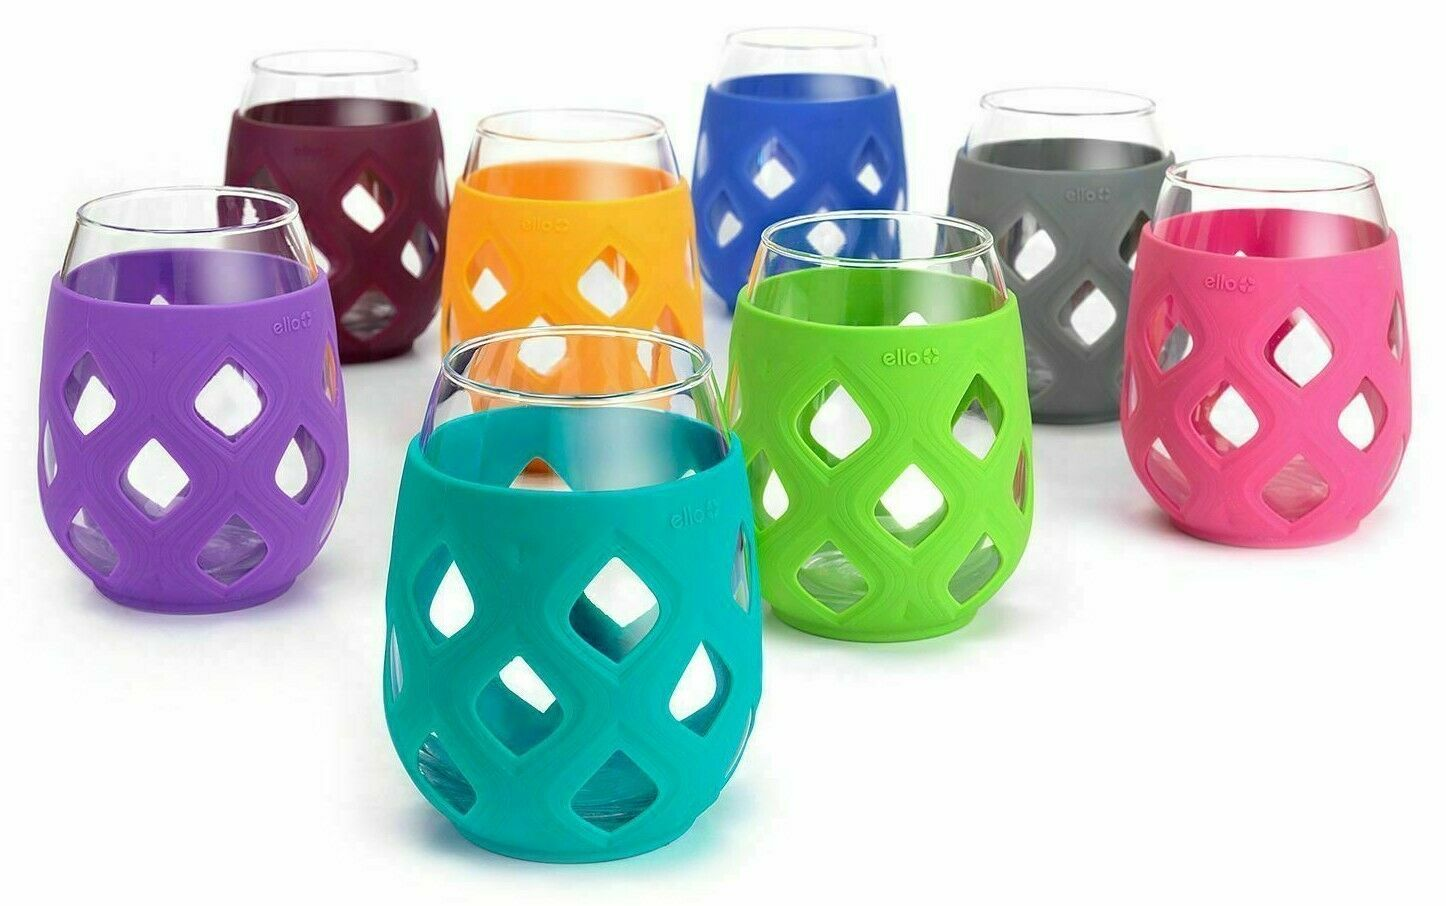 Lifefactory 17oz Wine Glass 4 Pack w// Silicone Sleeves New HOL/'18 Multi-Color